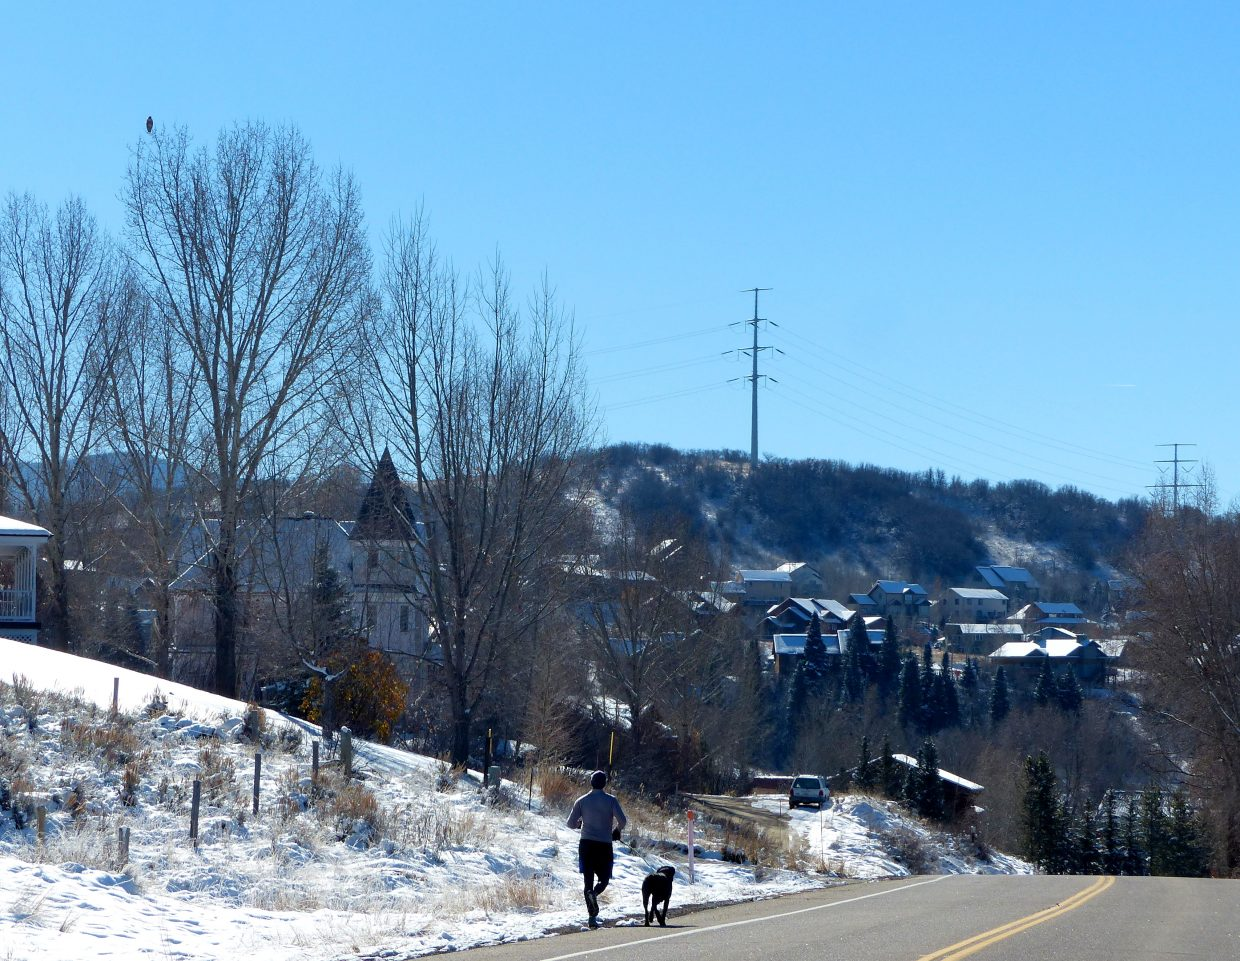 It is a beautiful blue sky day in Steamboat. Two more pictures will follow.